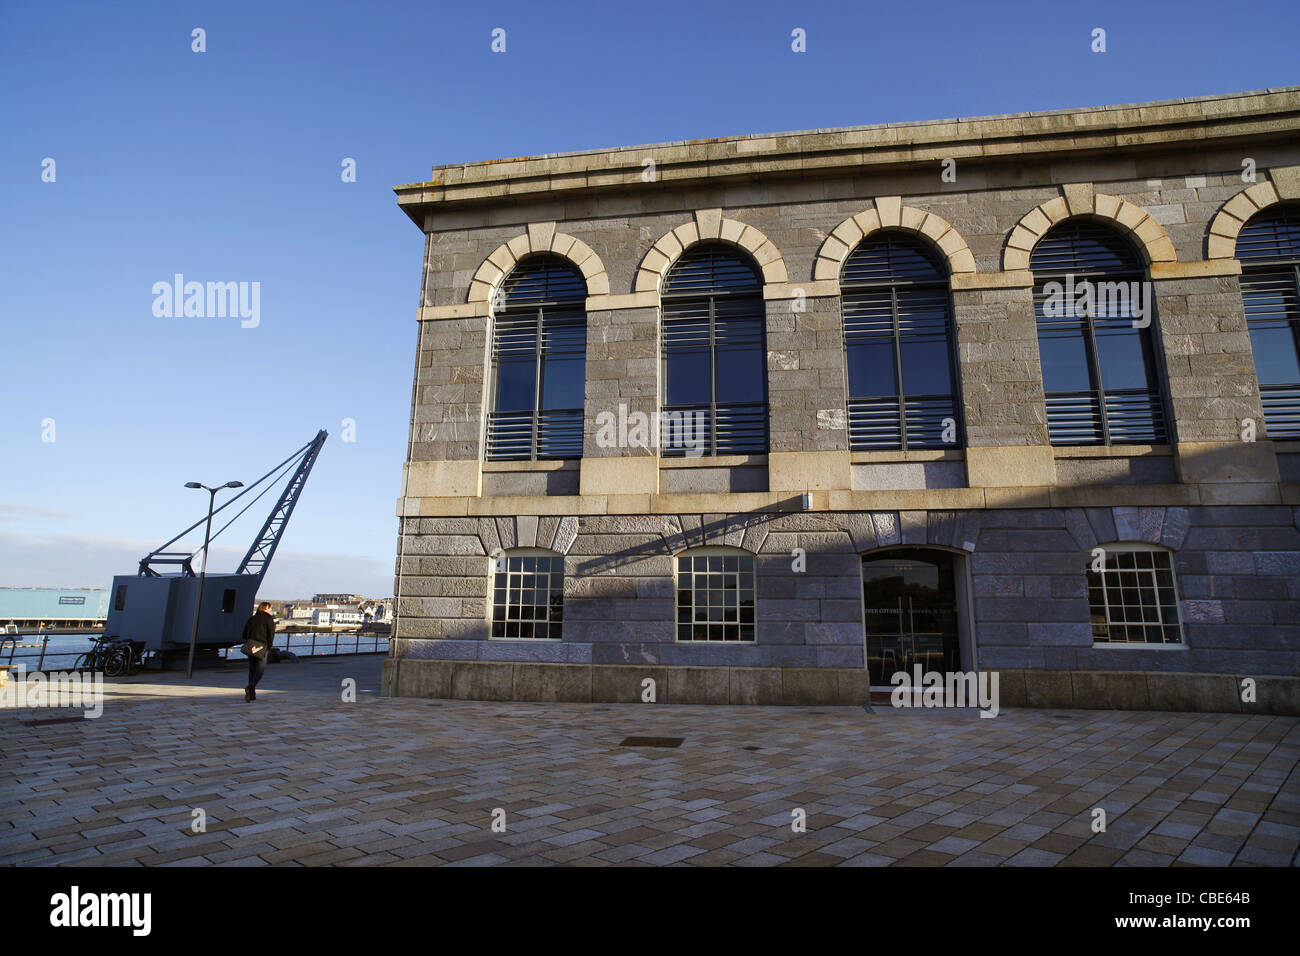 The River Cottage Canteen and Deli in the Brewhouse building in Plymouth's Royal William Yard, Devon, UK. - Stock Image